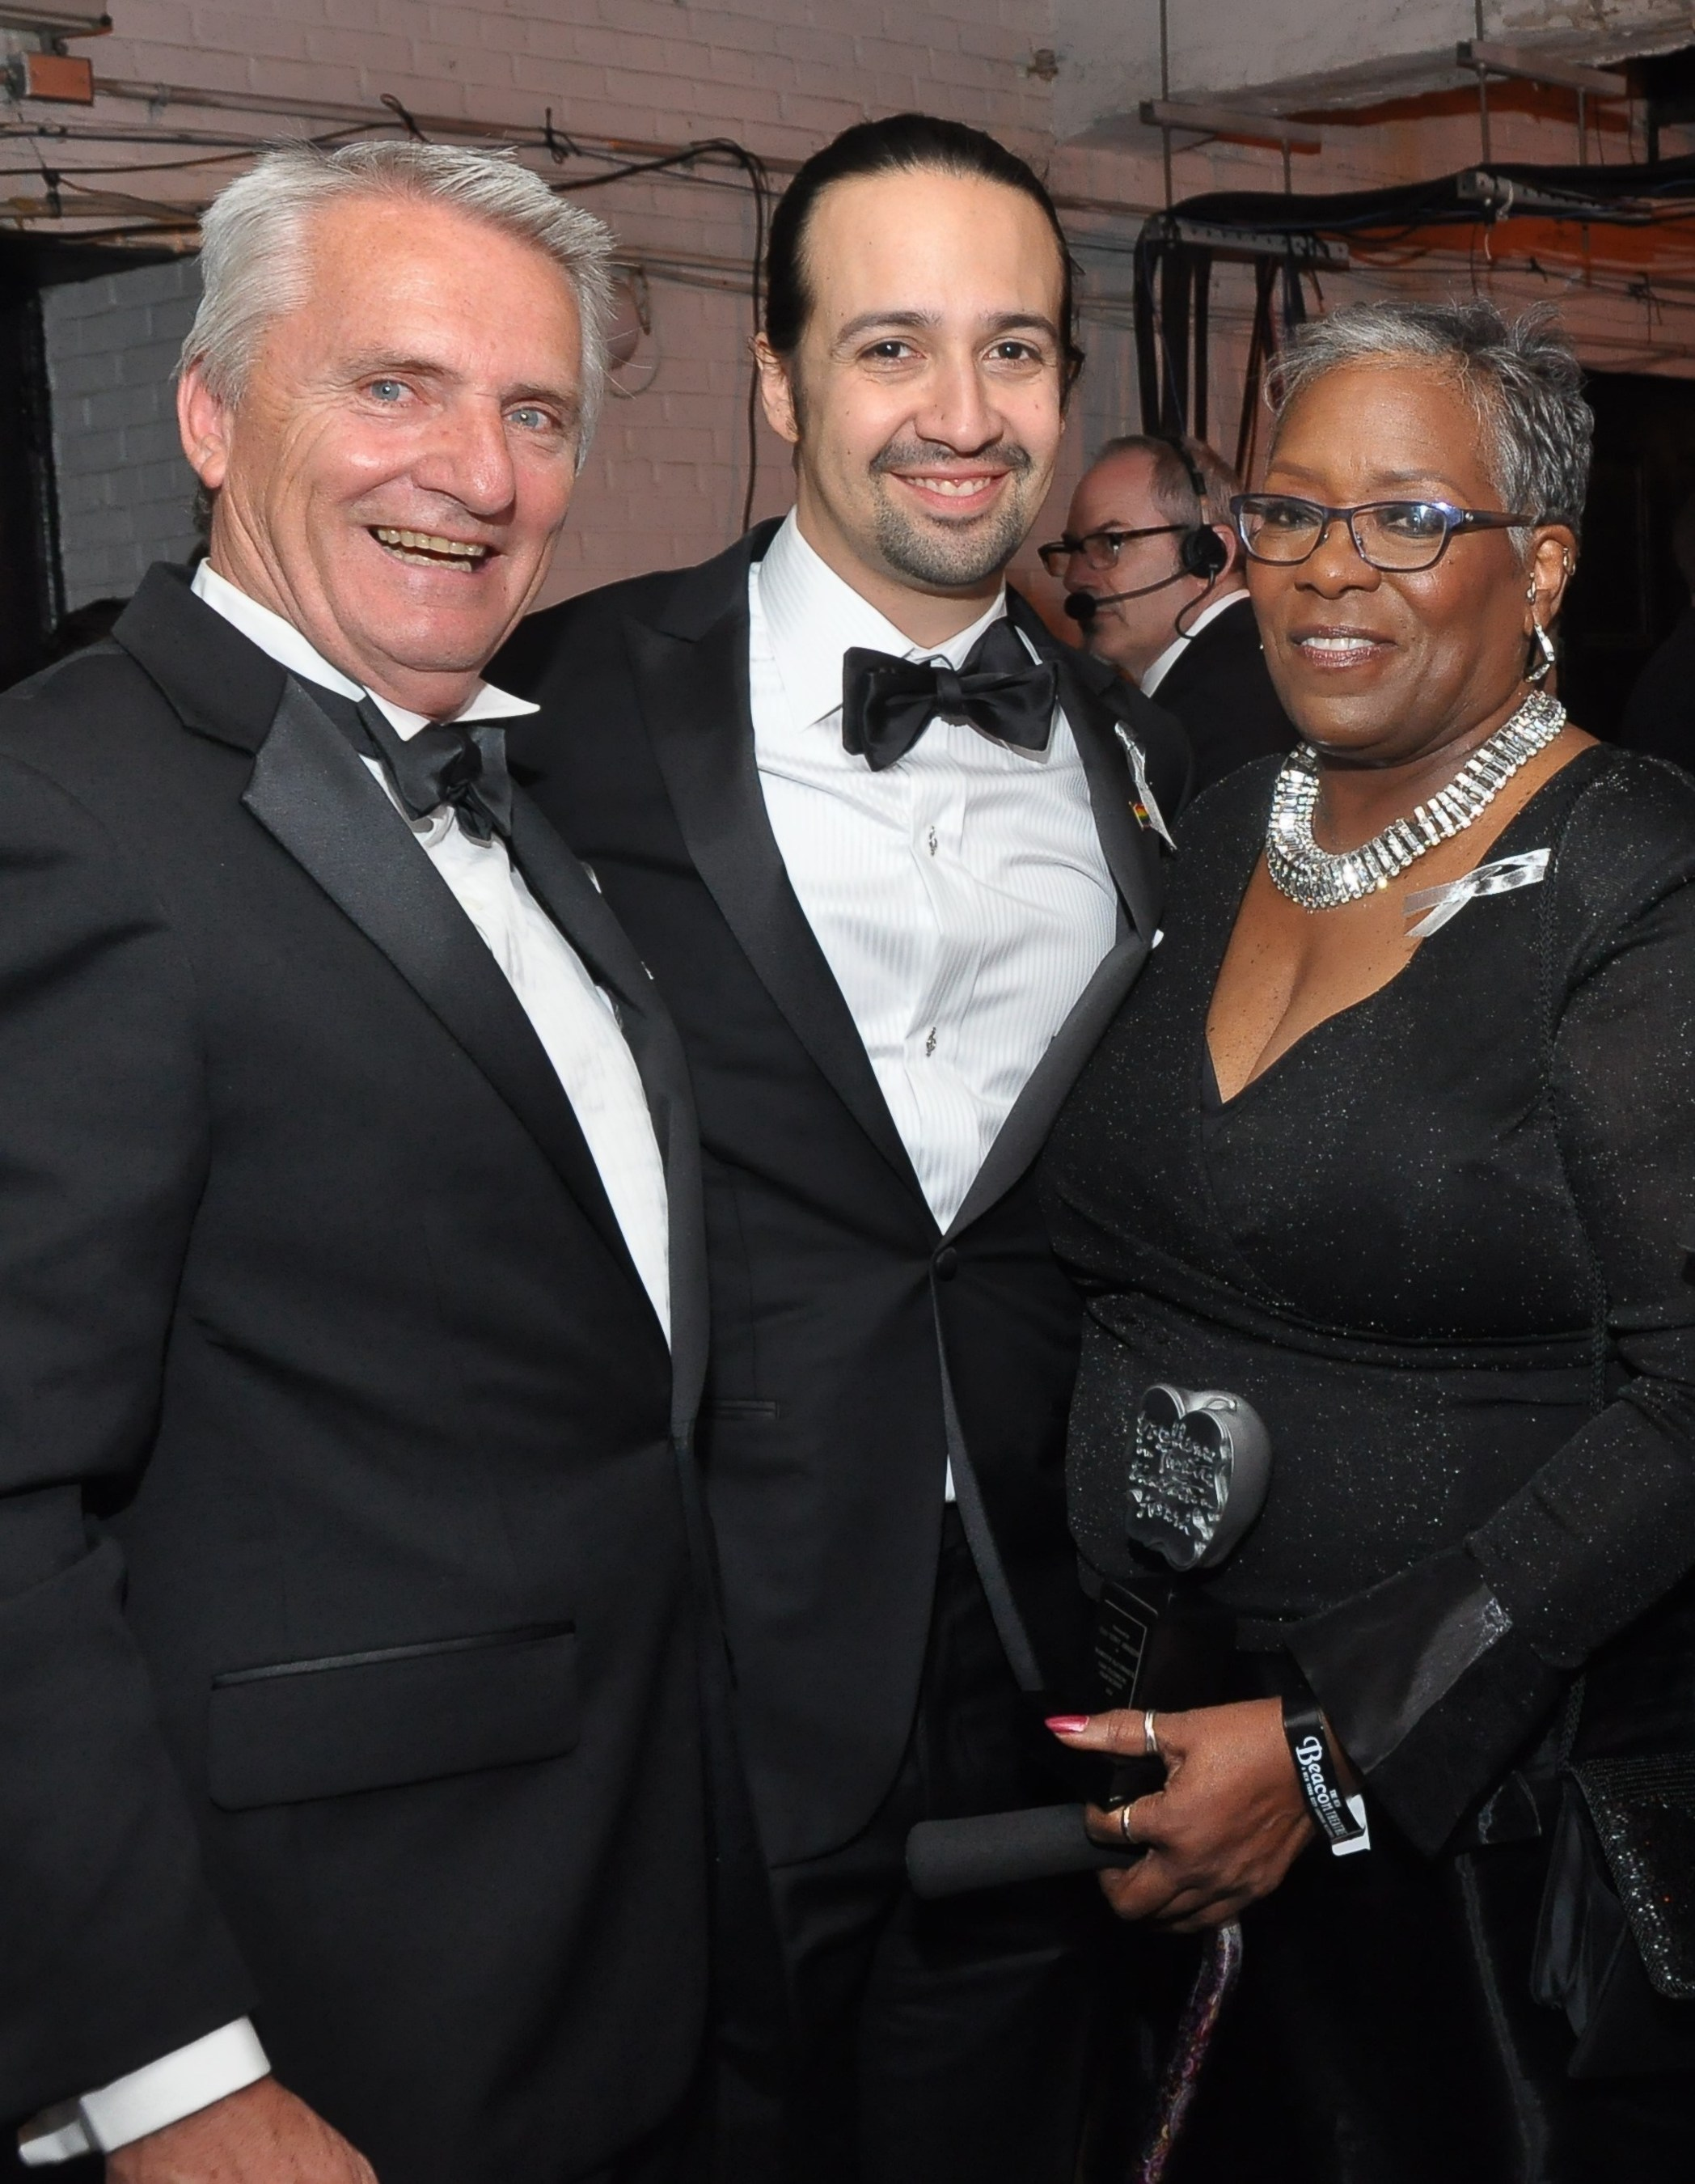 Tony Awards and Carnegie Mellon University Open Submissions for Theatre Education Award